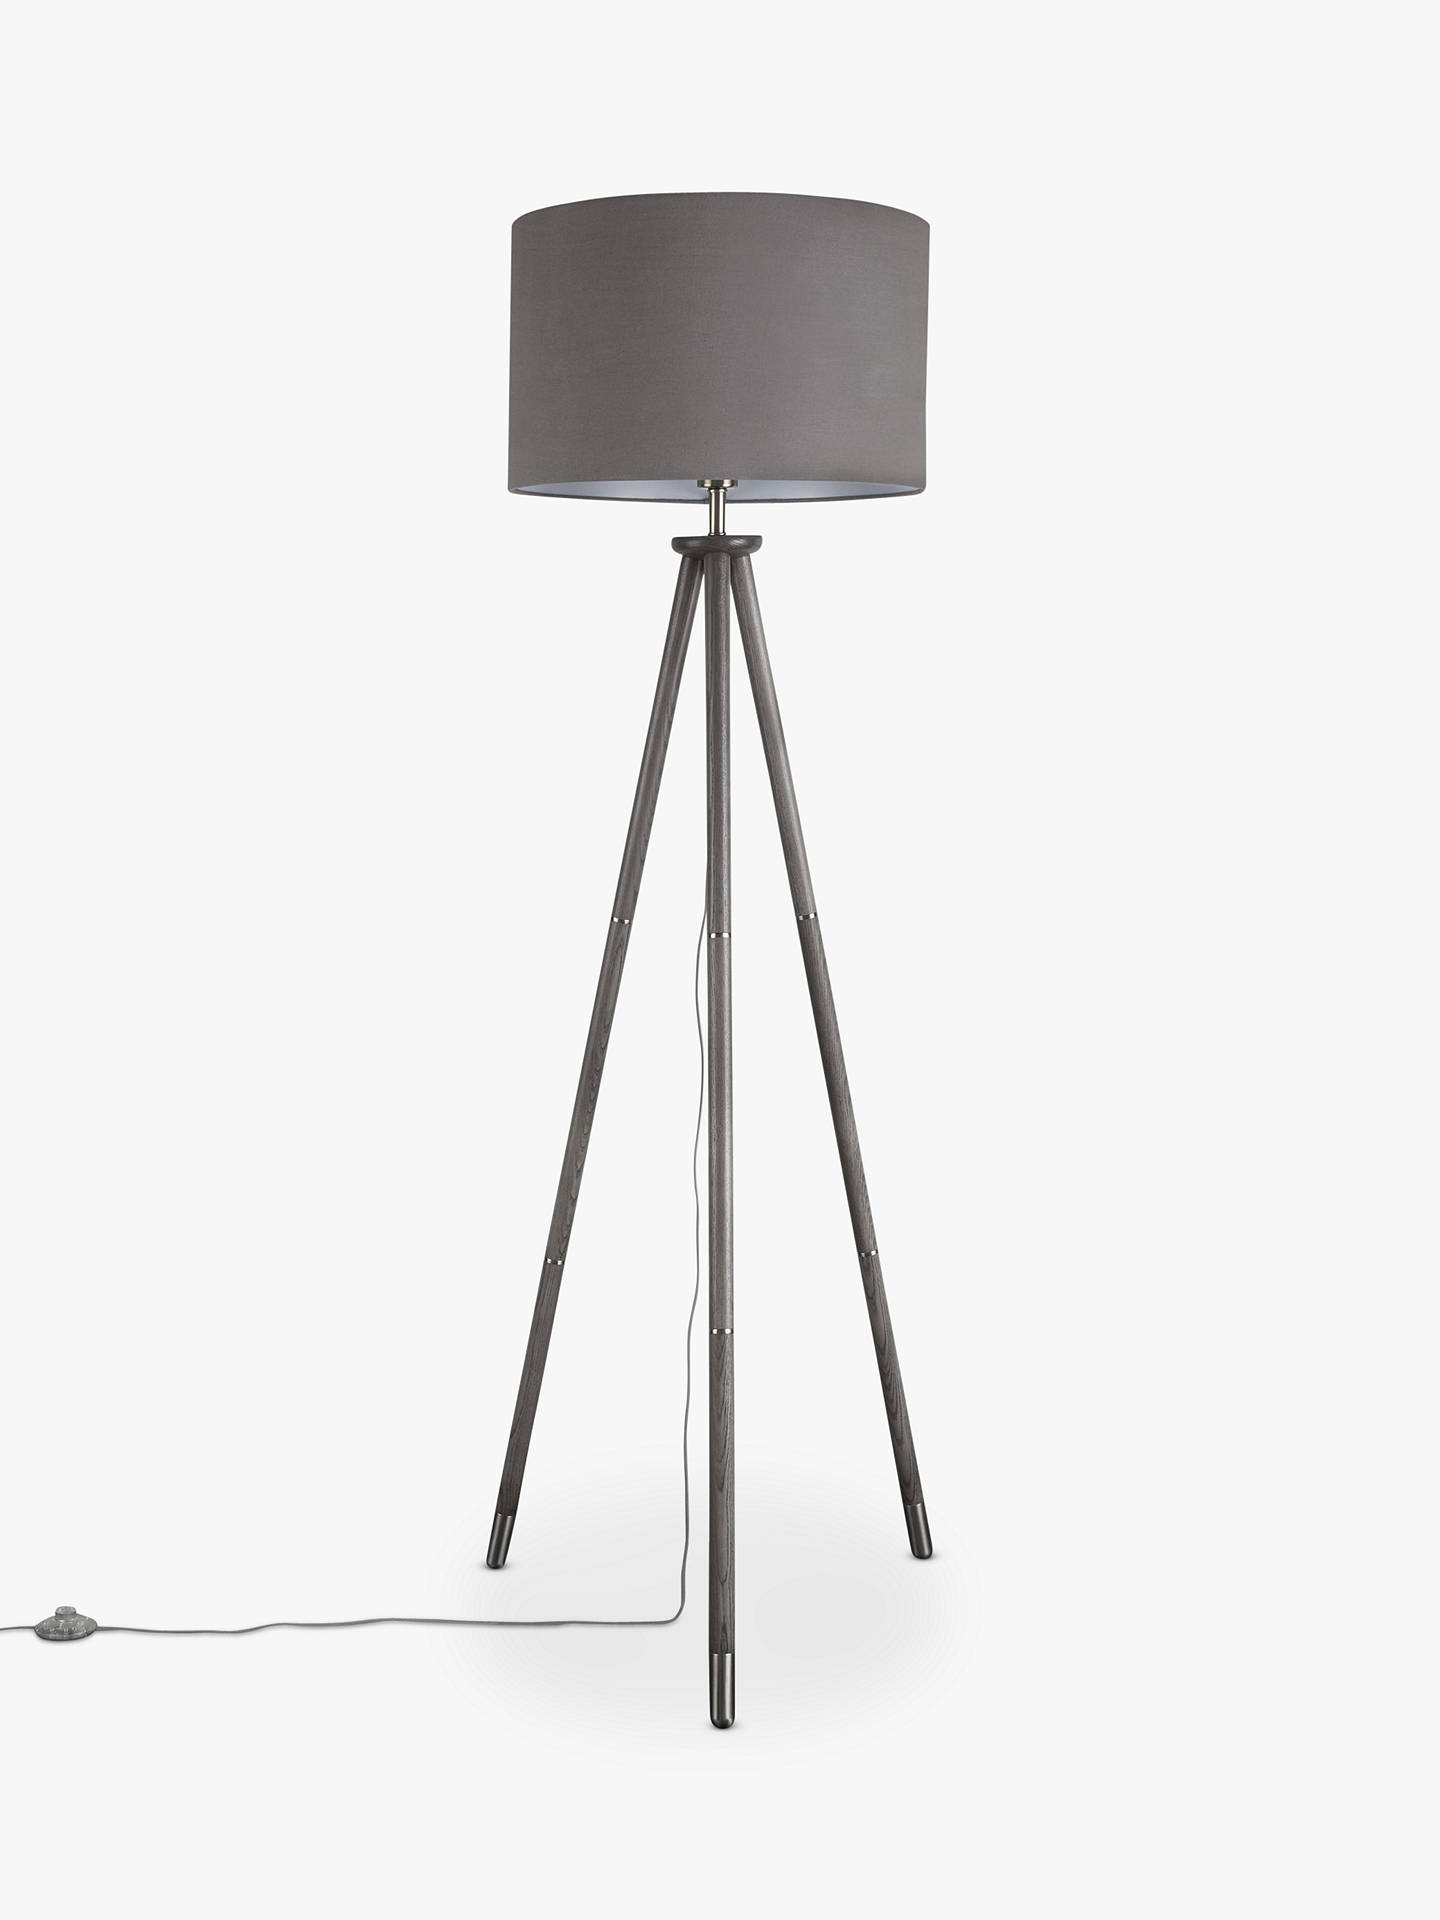 Buy John Lewis & Partners Bruce Tripod Floor Lamp, FSC-Certified (Ash) Online at johnlewis.com